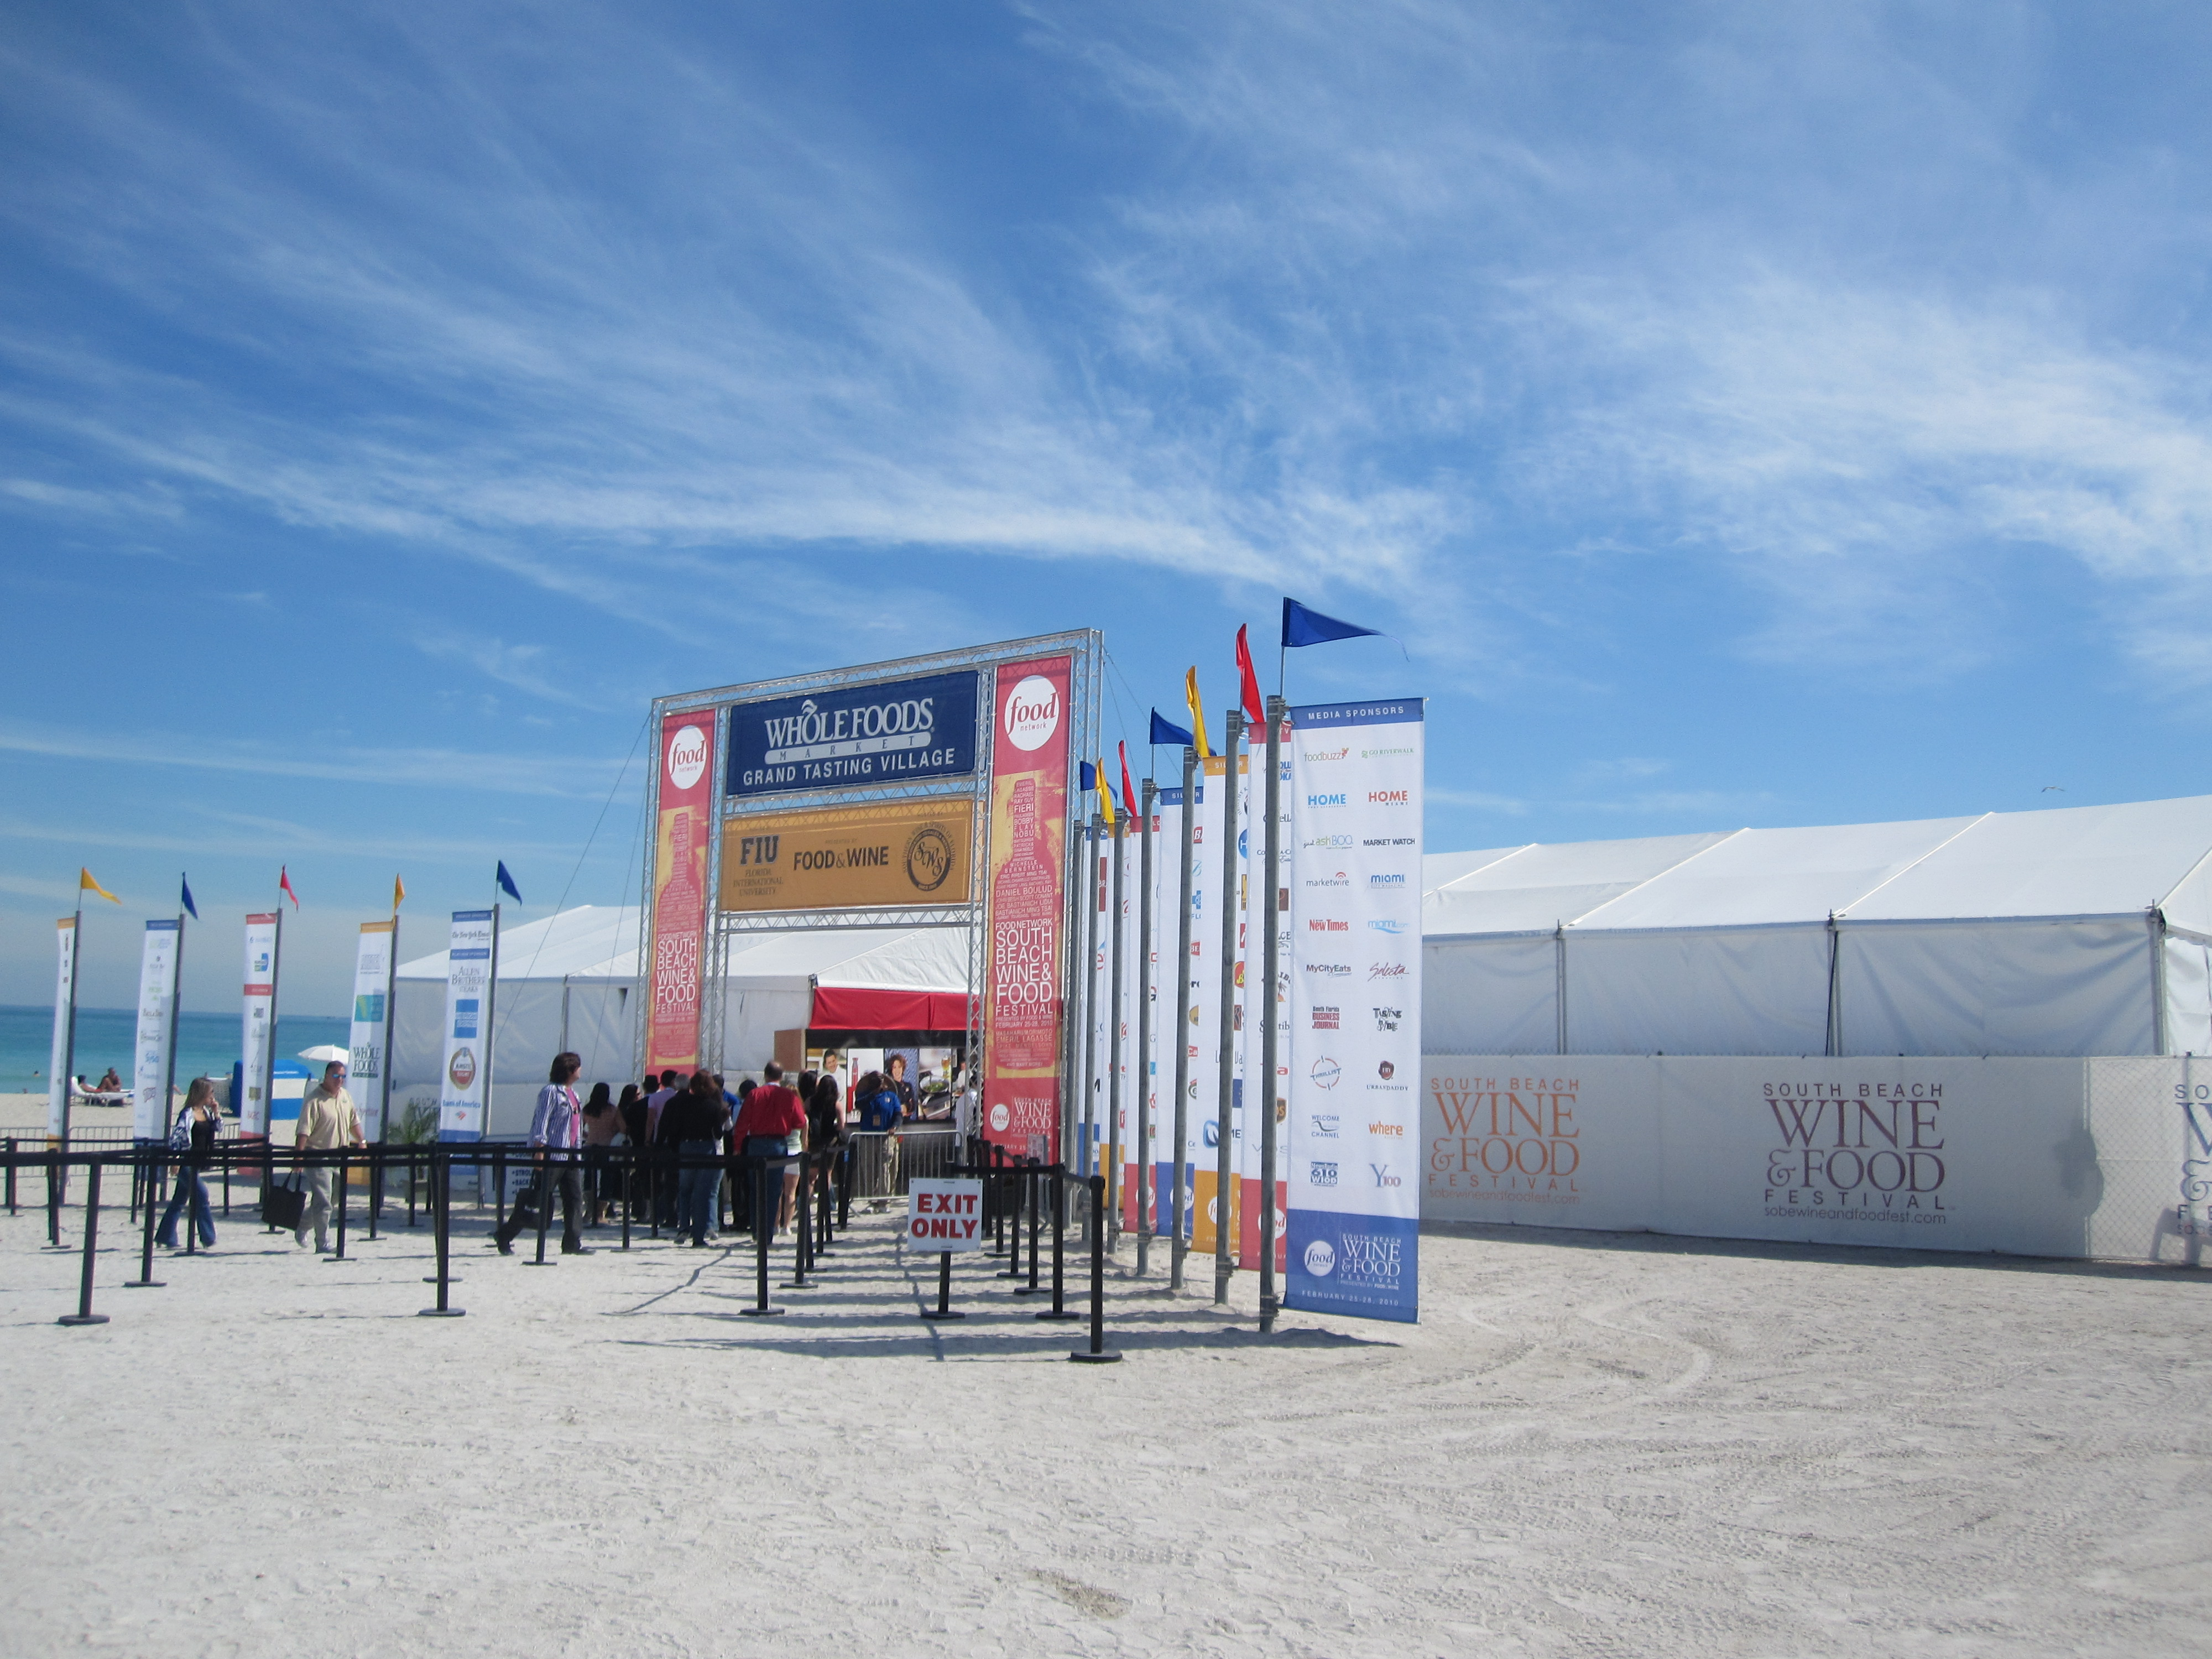 The festival entrance. Everything is on the sand, so if you ever plan on attending, be sure not to wear heels!